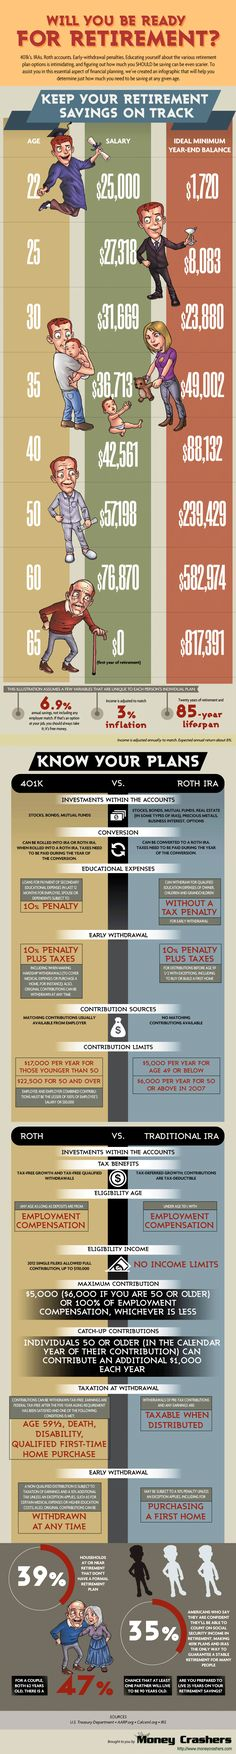 Finance Infographic - Will you be ready for retirement? - 401k, IRA, Roth. -Highland Financial Advisors, LLC does not endorse or approve of any form of third party communication, or re-distribution of this graphic or information that we post on Pinterest. Nor do we ourselves endorse this third party or their products/services. #careers